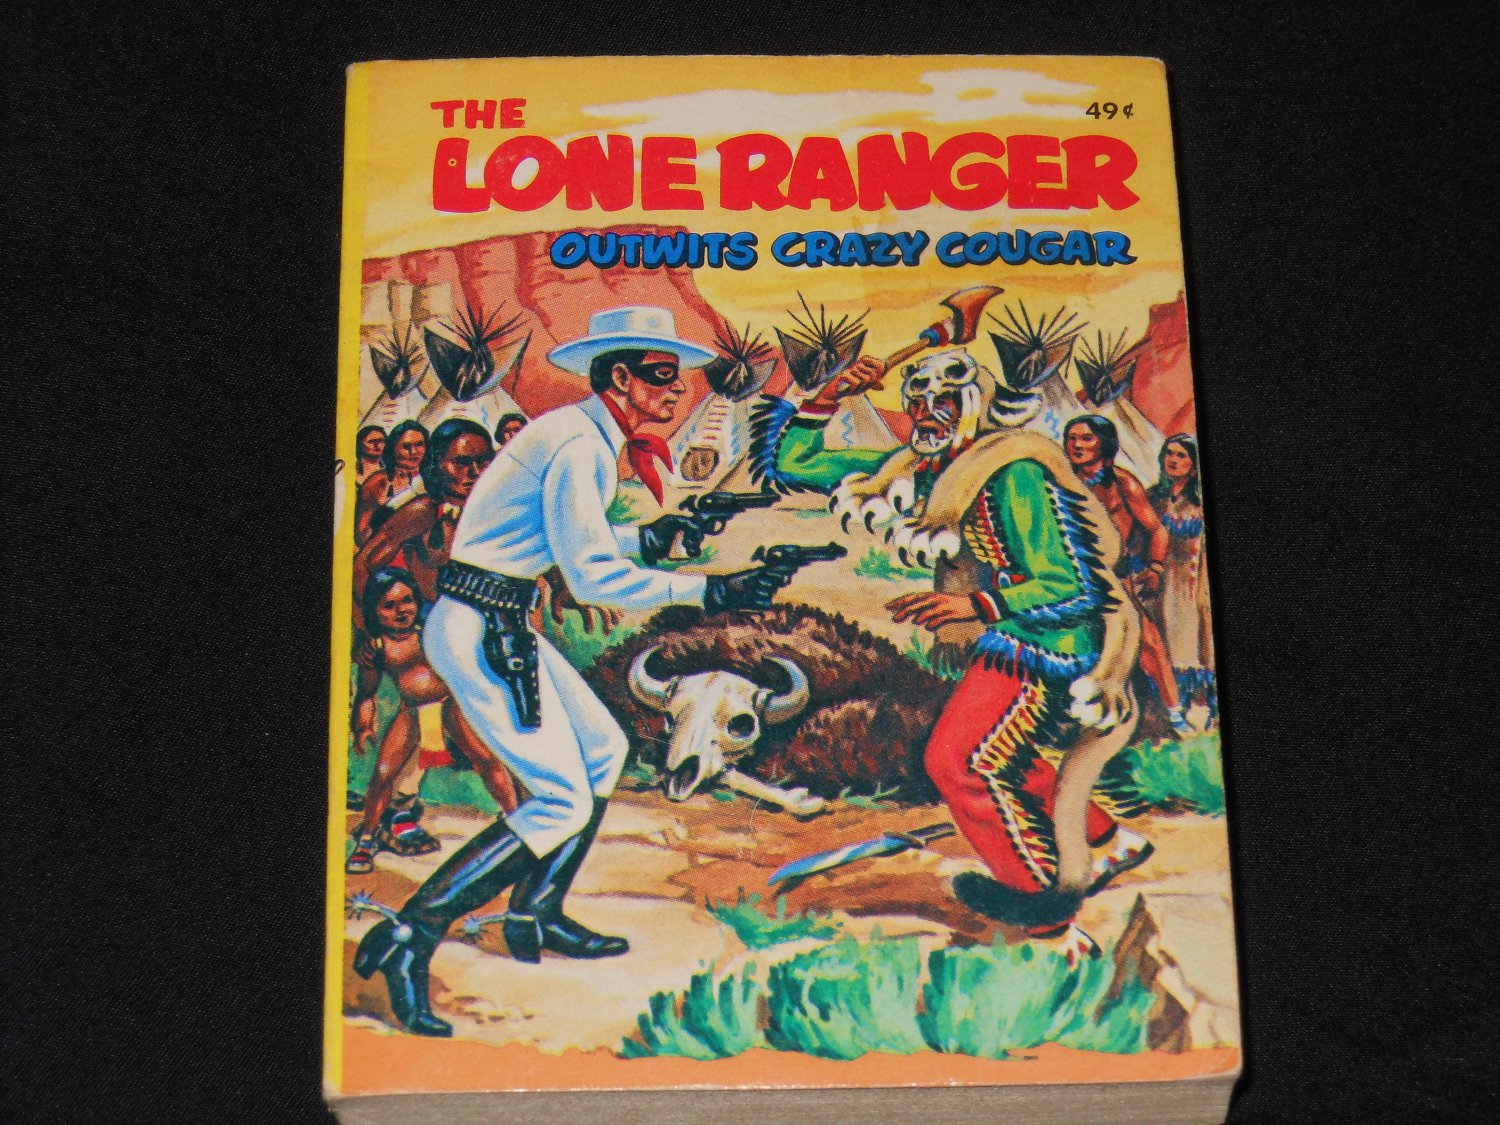 The Lone Ranger Outwits Crazy Cougar [1979] Whitman Big Little Book 5774-1 69¢